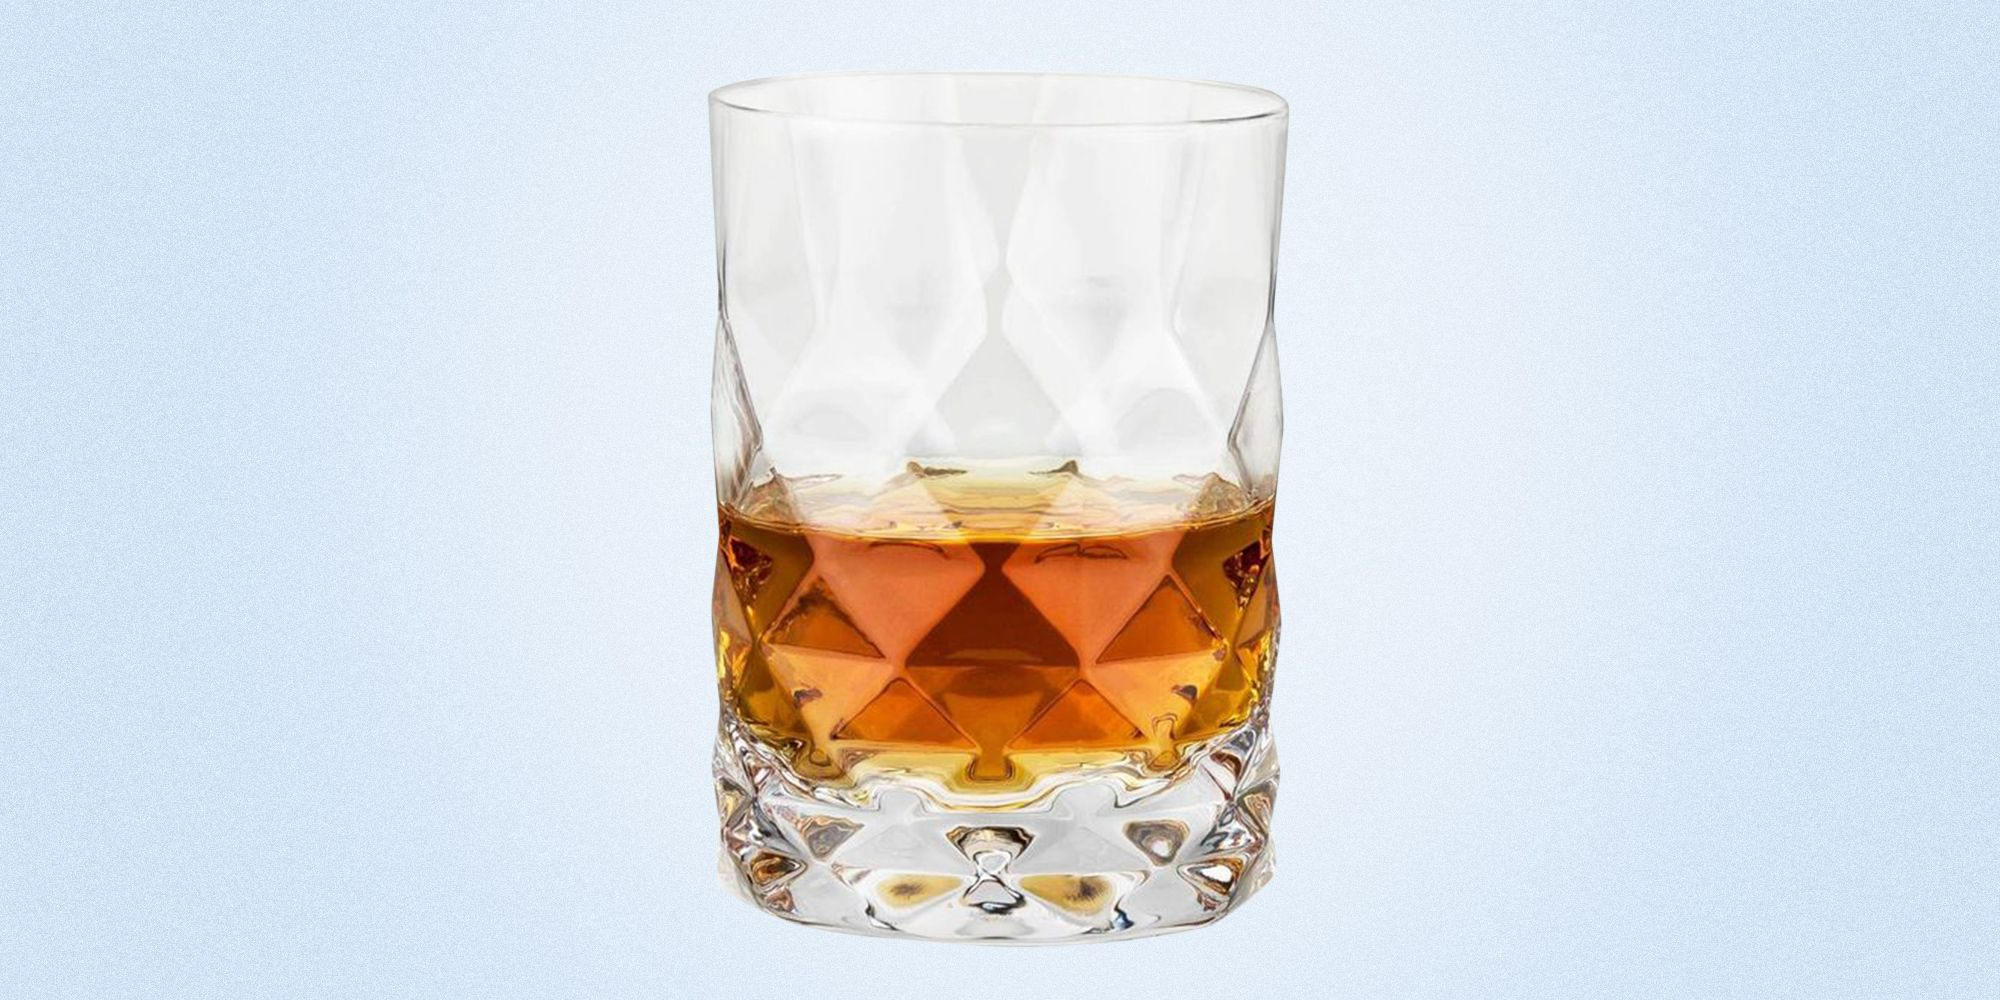 The 11 Best Whiskey Glasses for Your Top-Shelf Pours